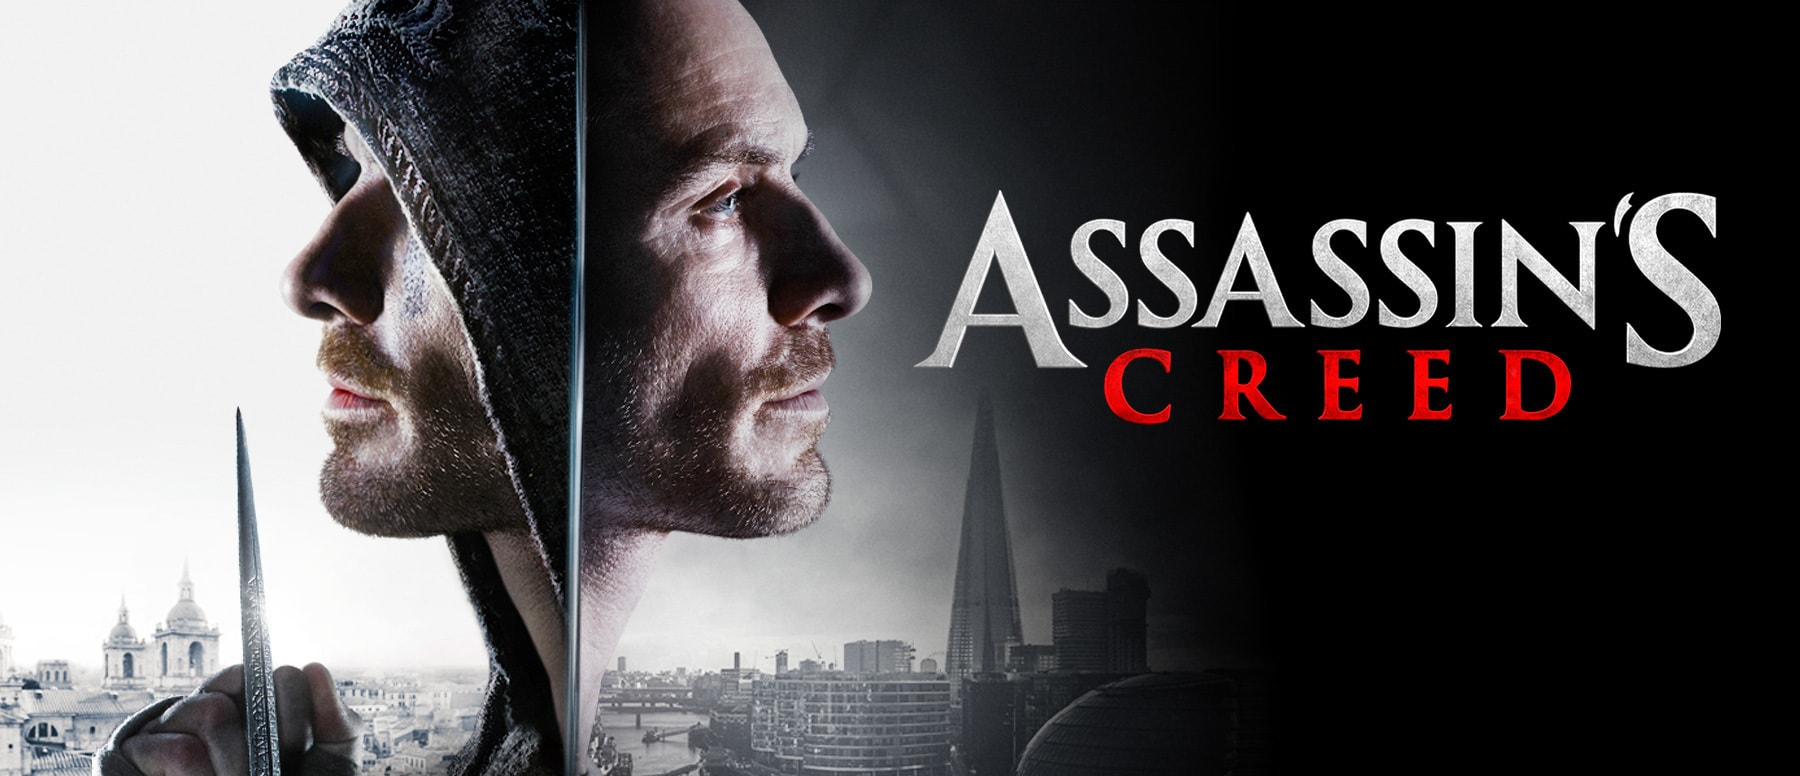 Assassin's Creed Hero